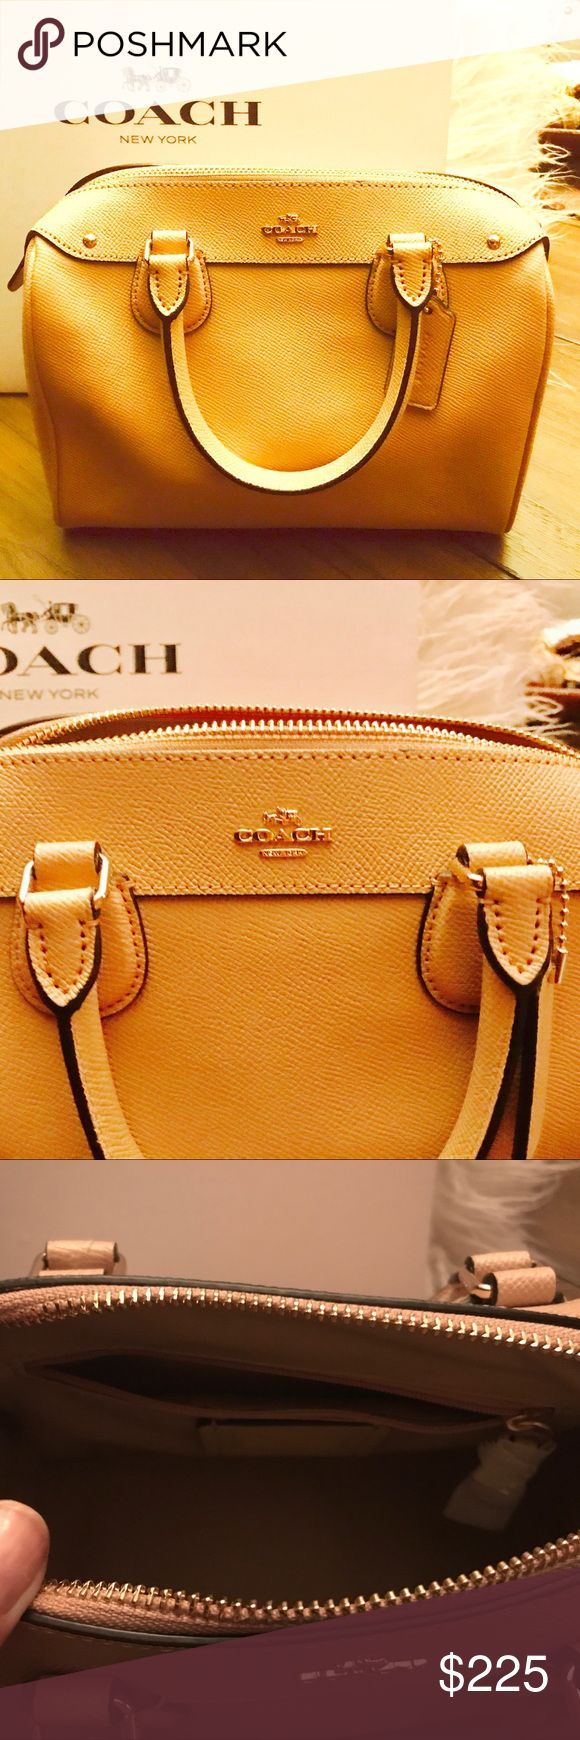 Chic Coach Satchel with Crossbody Strap Included! Chic Coach Bag in lovely neutral color to go with everything! Carry it with handles or attach crossbody strap at times when you need to be hands free. Chic, classy and versatile make this timeless Coach bag a must have! Big enough to fit everything yet small enough to not be a burden to carry💛👍🏼. Brand New! Tag still on Retail $275. Will ship within 24 hours🎊 Coach Bags Crossbody Bags